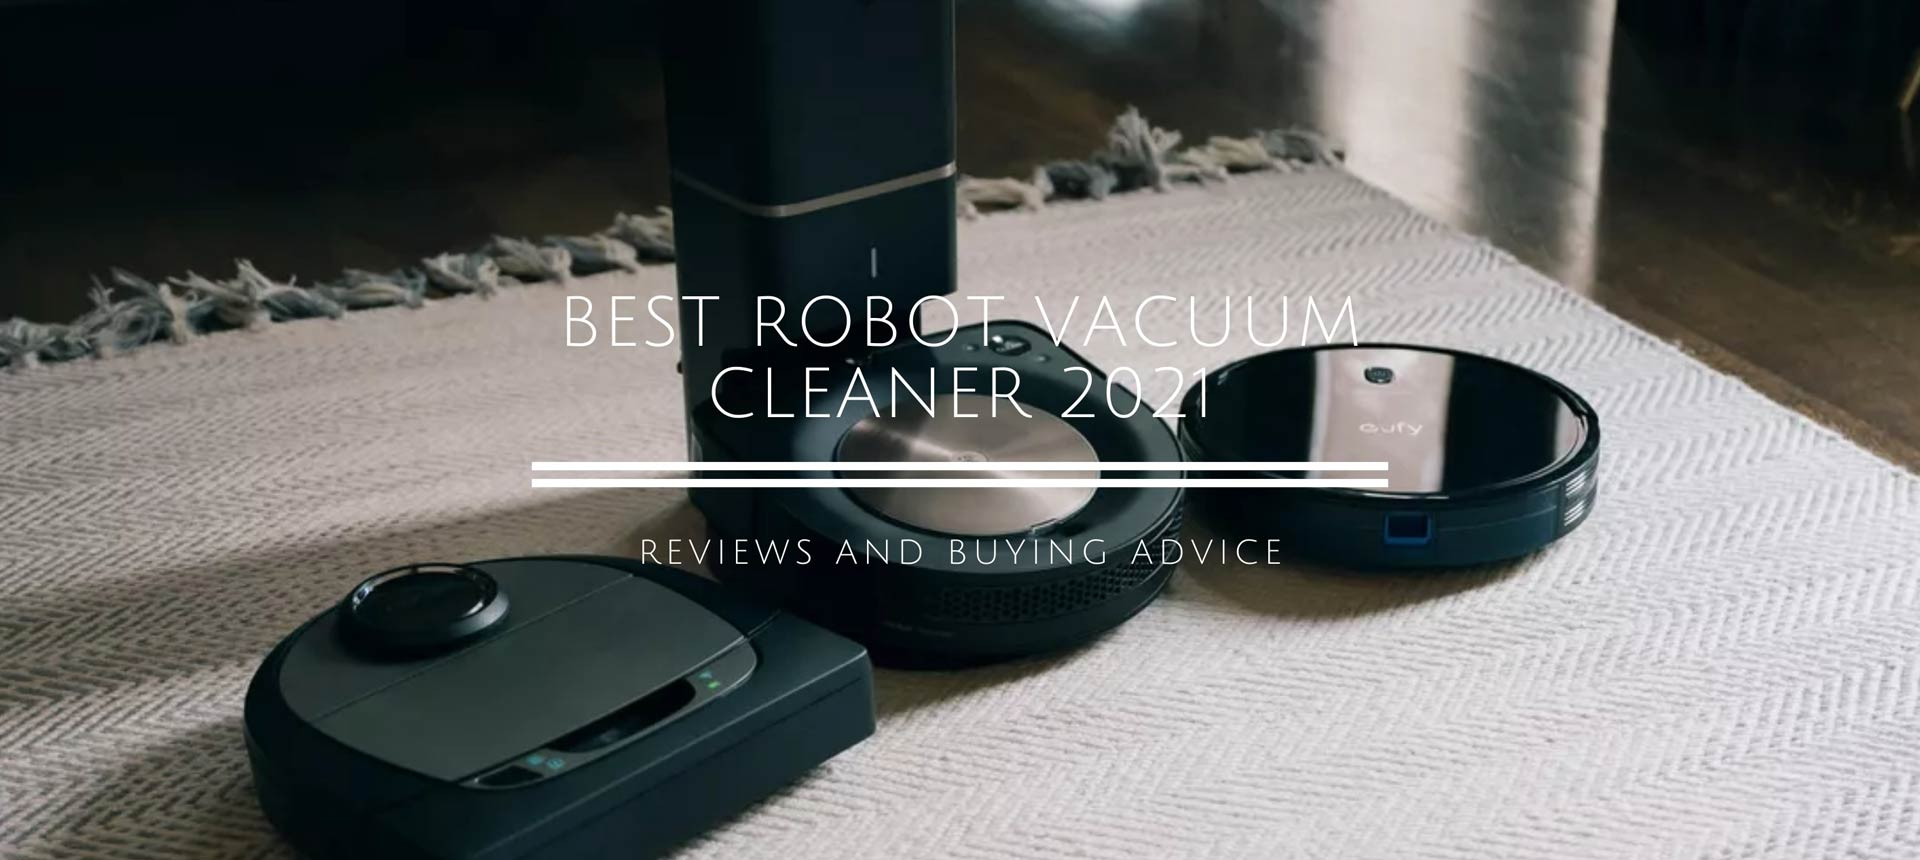 The Best Robot Vacuum Cleaner for 2021